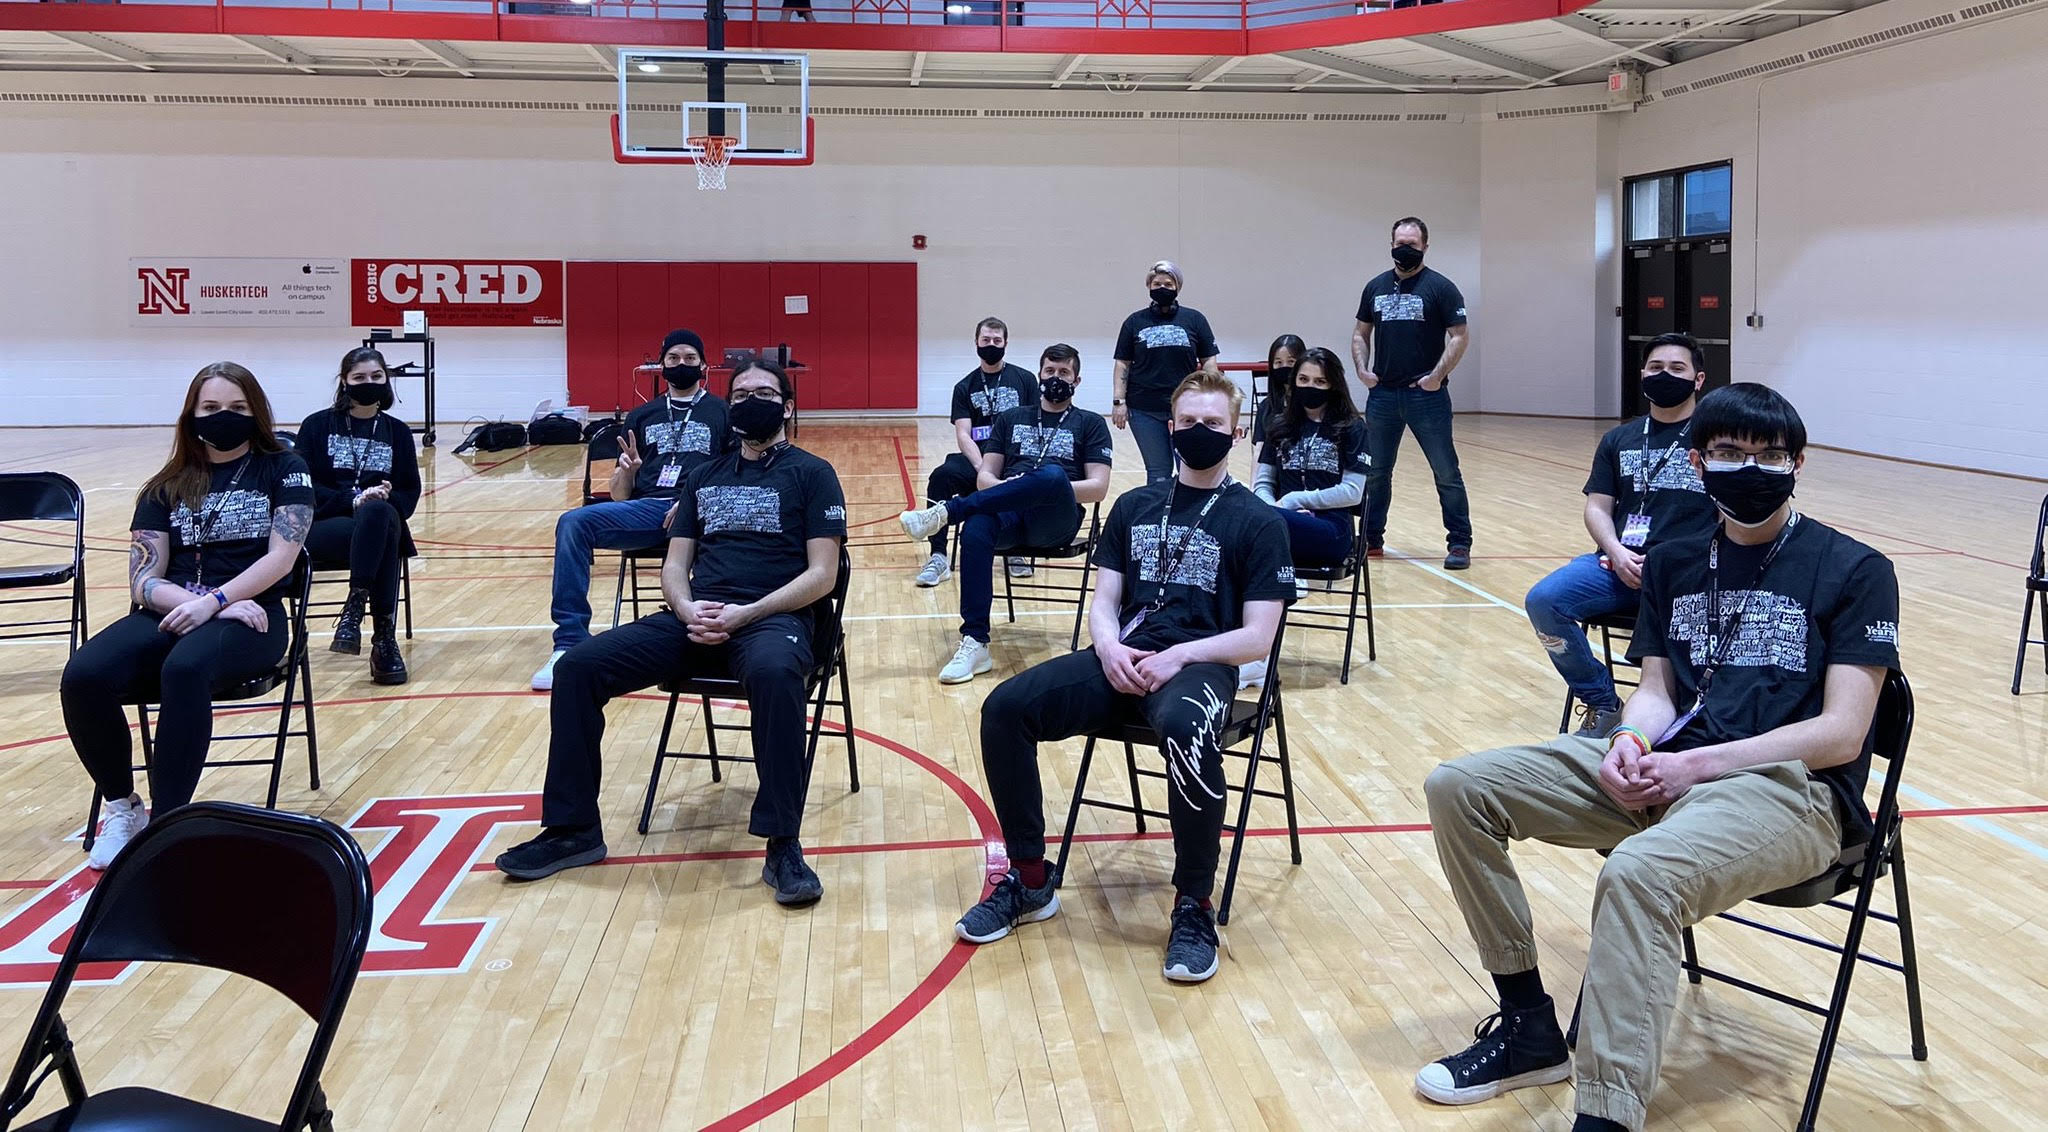 UNL students gather in-person with masks for FIFA 21 tournament